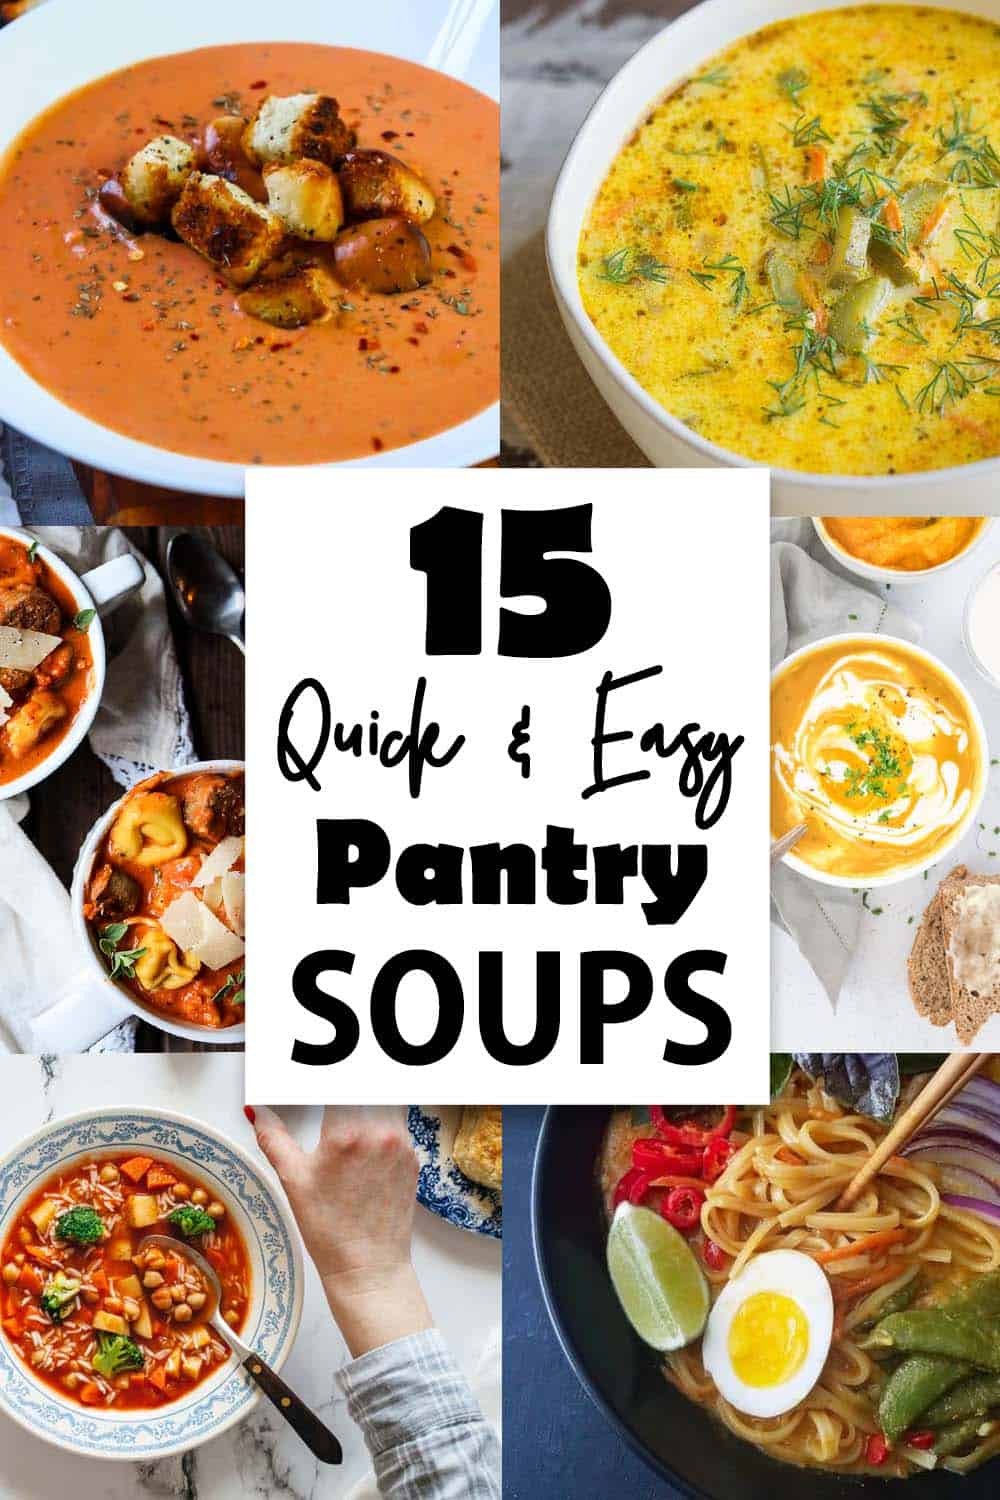 Quick and Easy Pantry Soups Collage